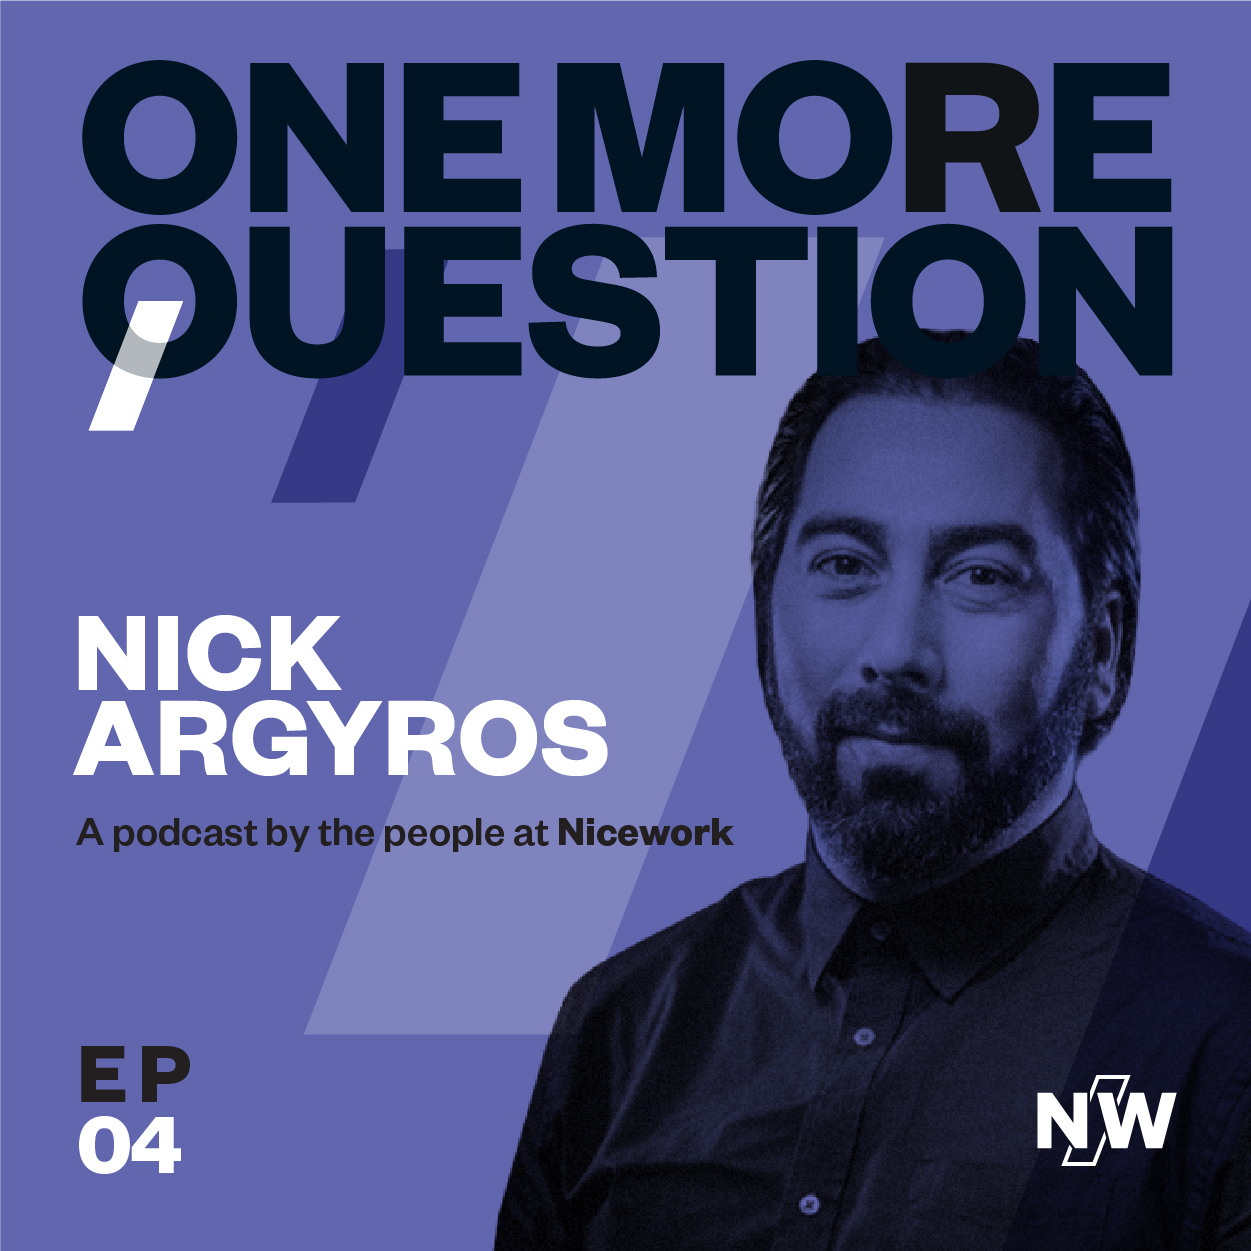 NickArgyrosWebsite cover.jpg